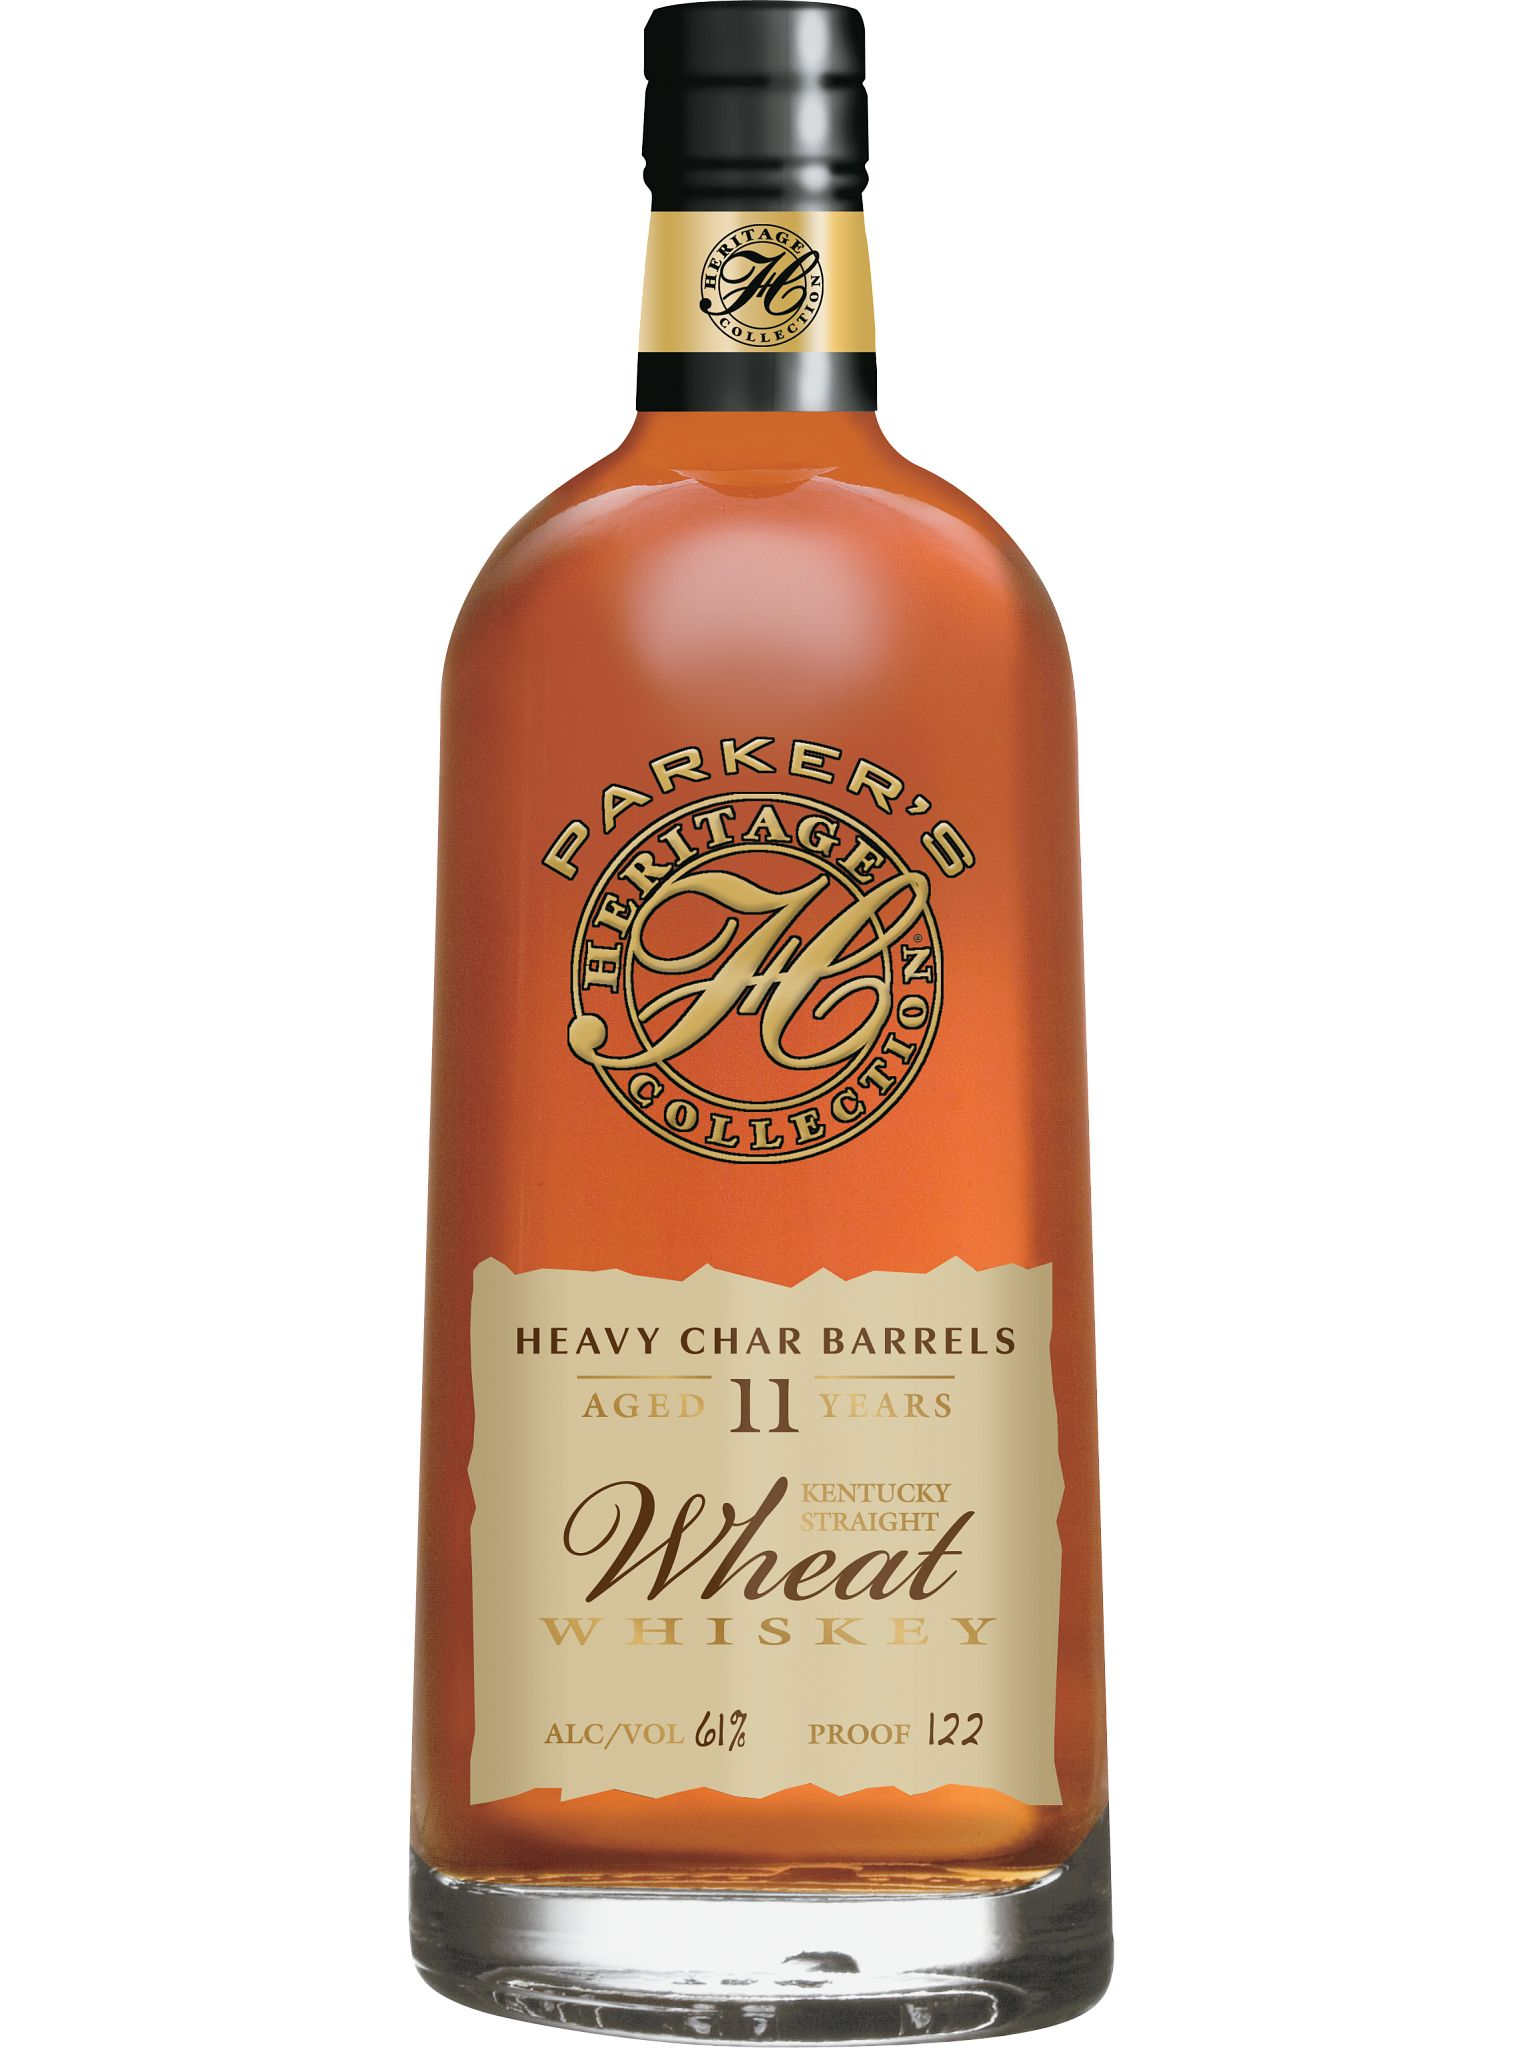 Heaven Hill Distillery Announces Release of 2021 Parker's Heritage Collection Limited Edition